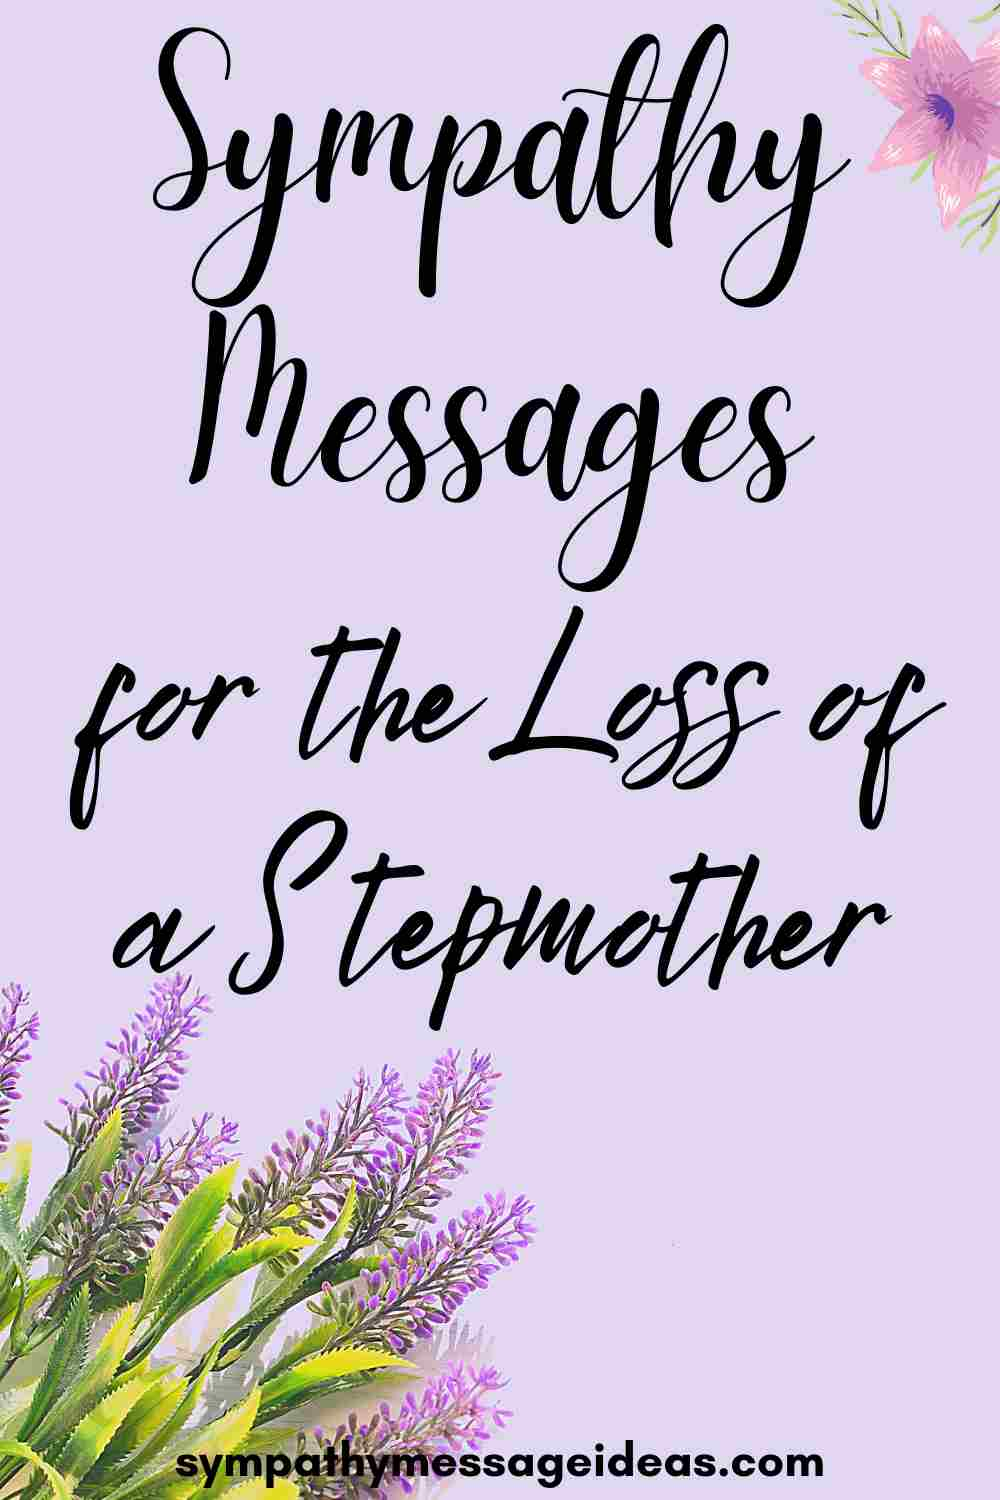 sympathy messages for loss of stepmother Pinterest